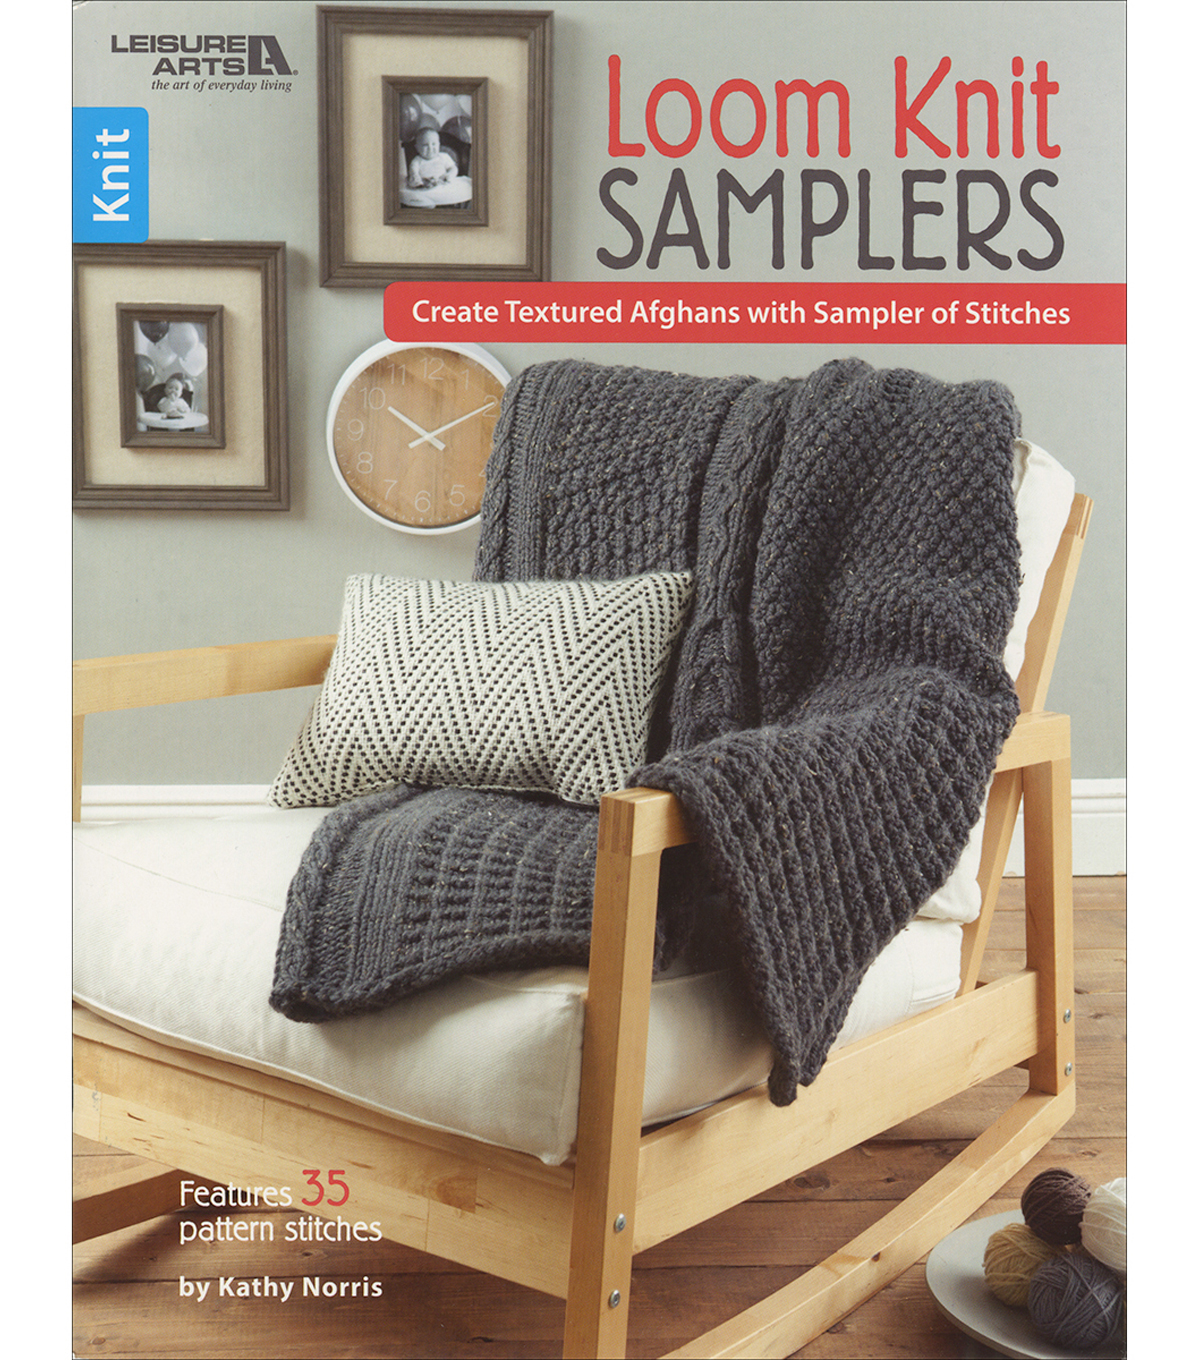 Leisure Arts Loom Knit Samplers Knitting Book